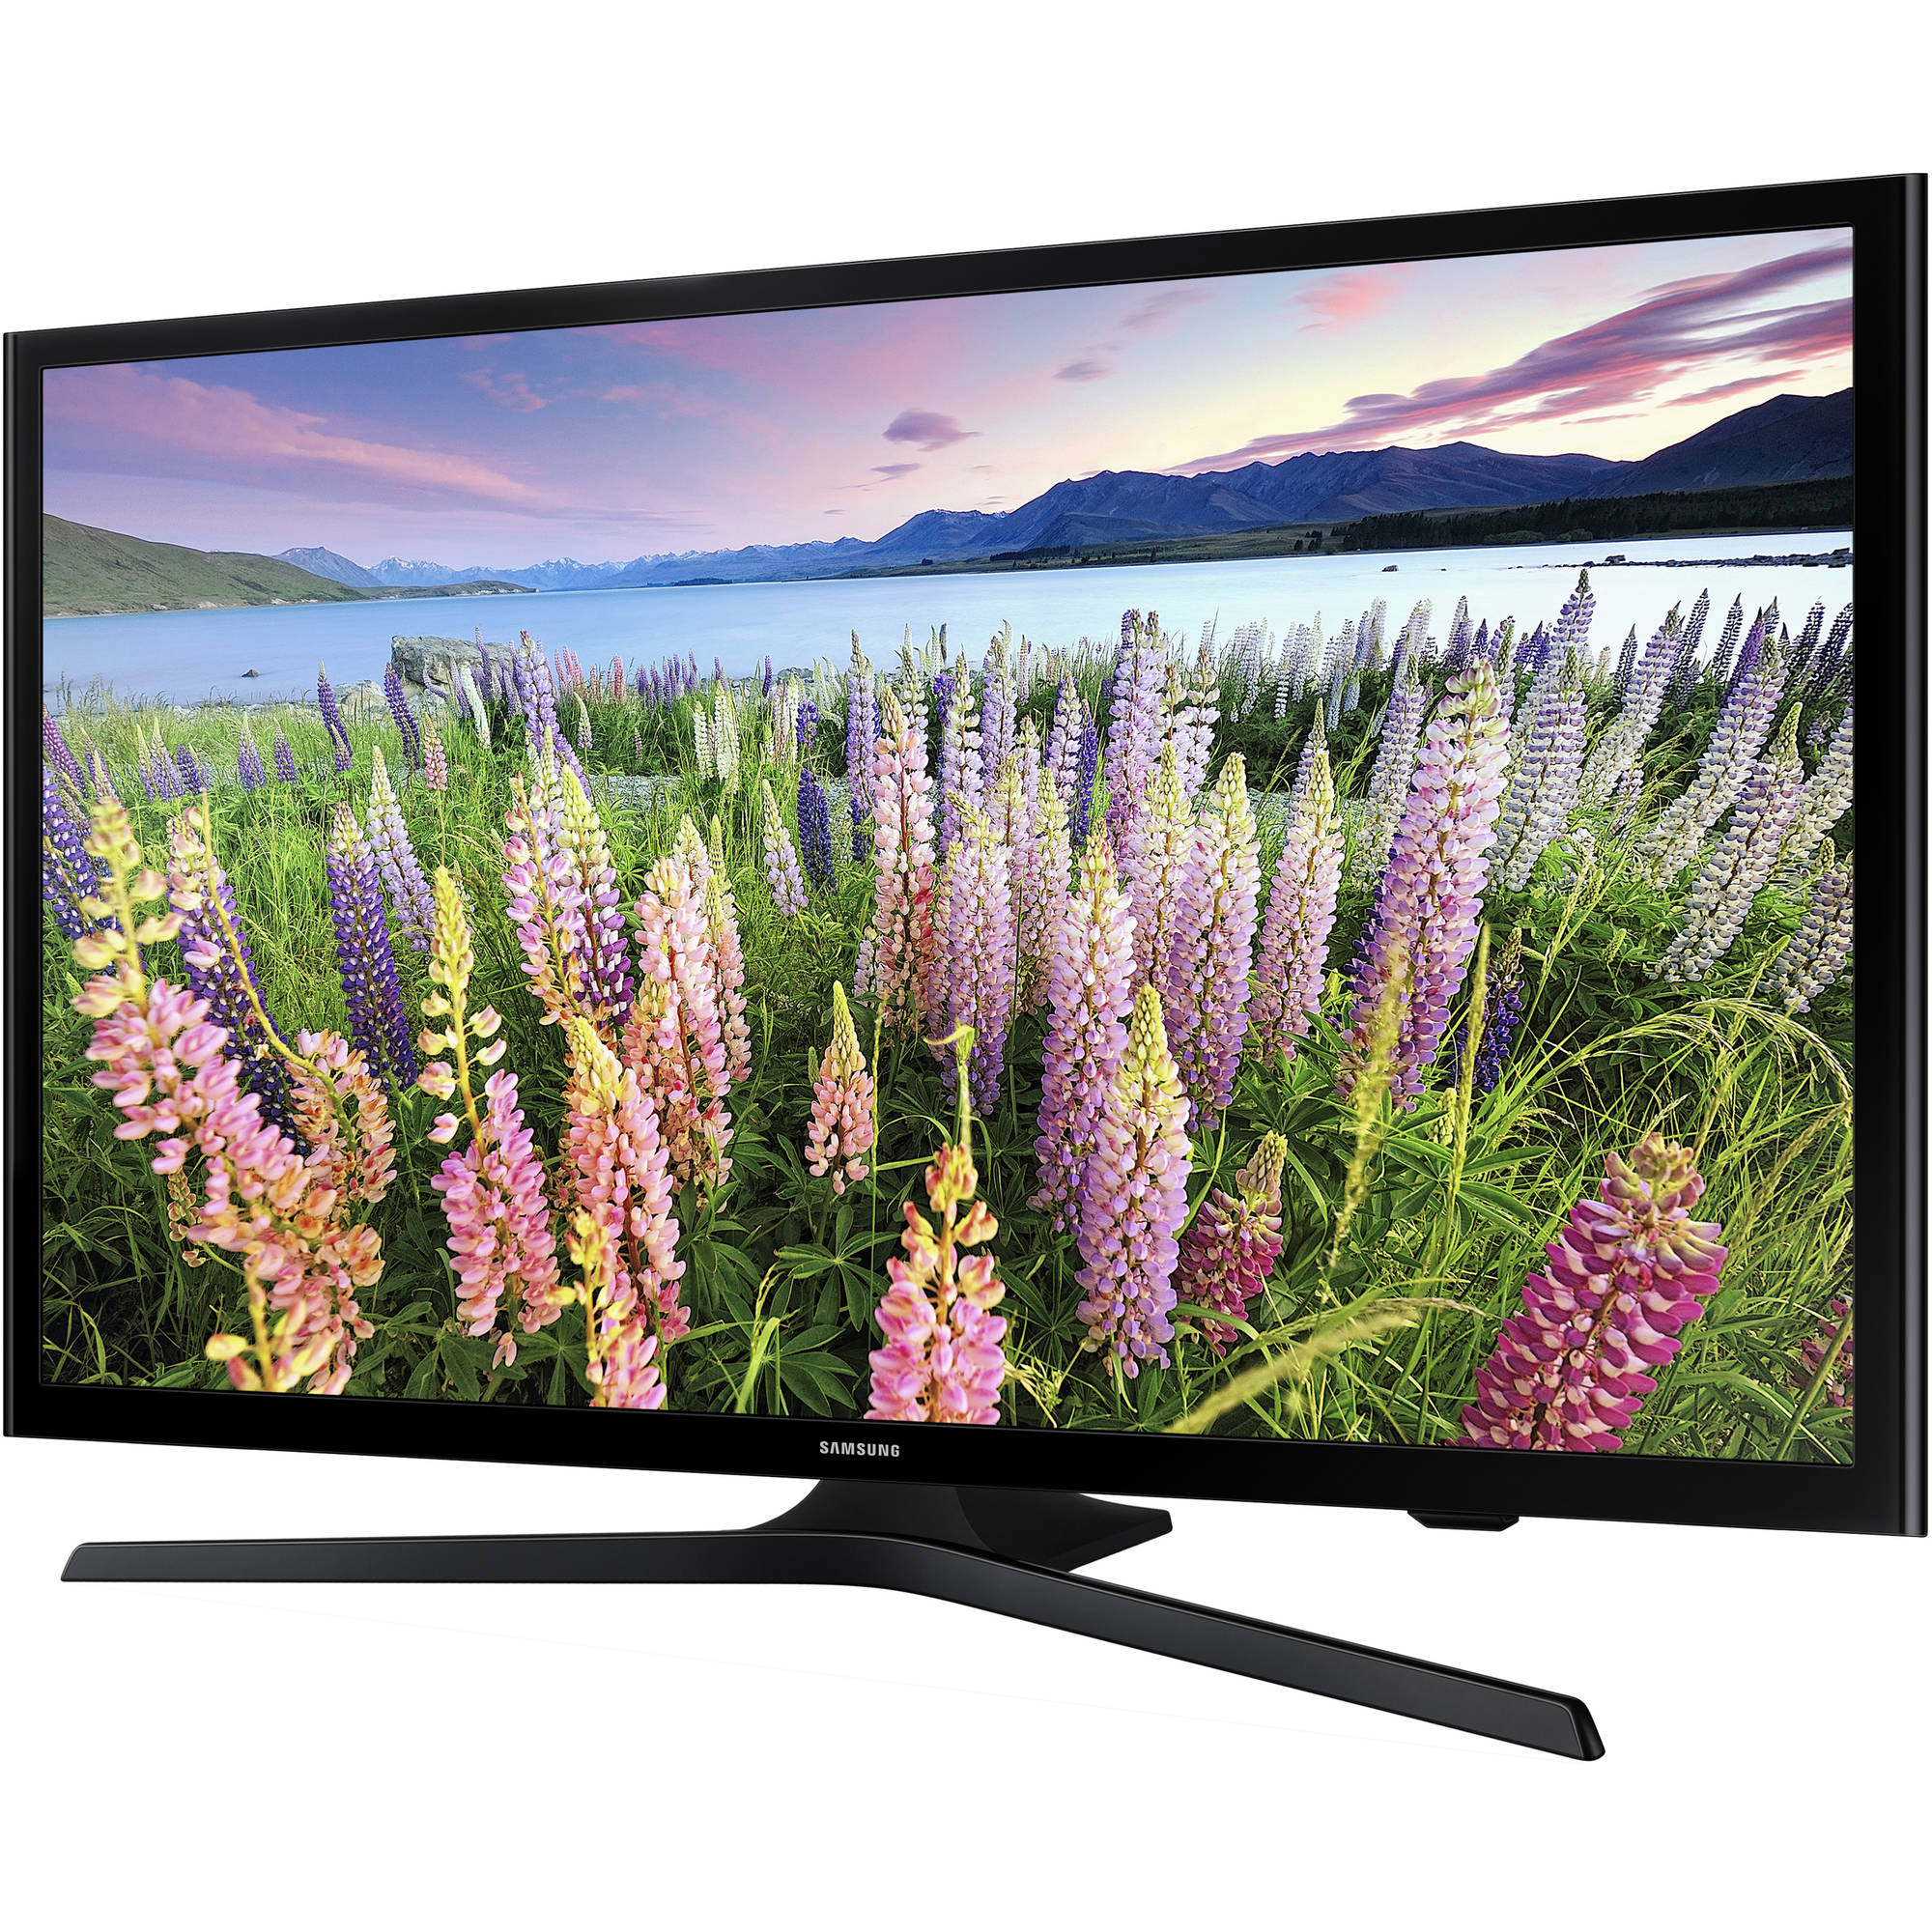 "SAMSUNG 50"" 5200 Series - Full HD Smart LED TV - 1080p, 120MR (Model#: UN50J5200)"